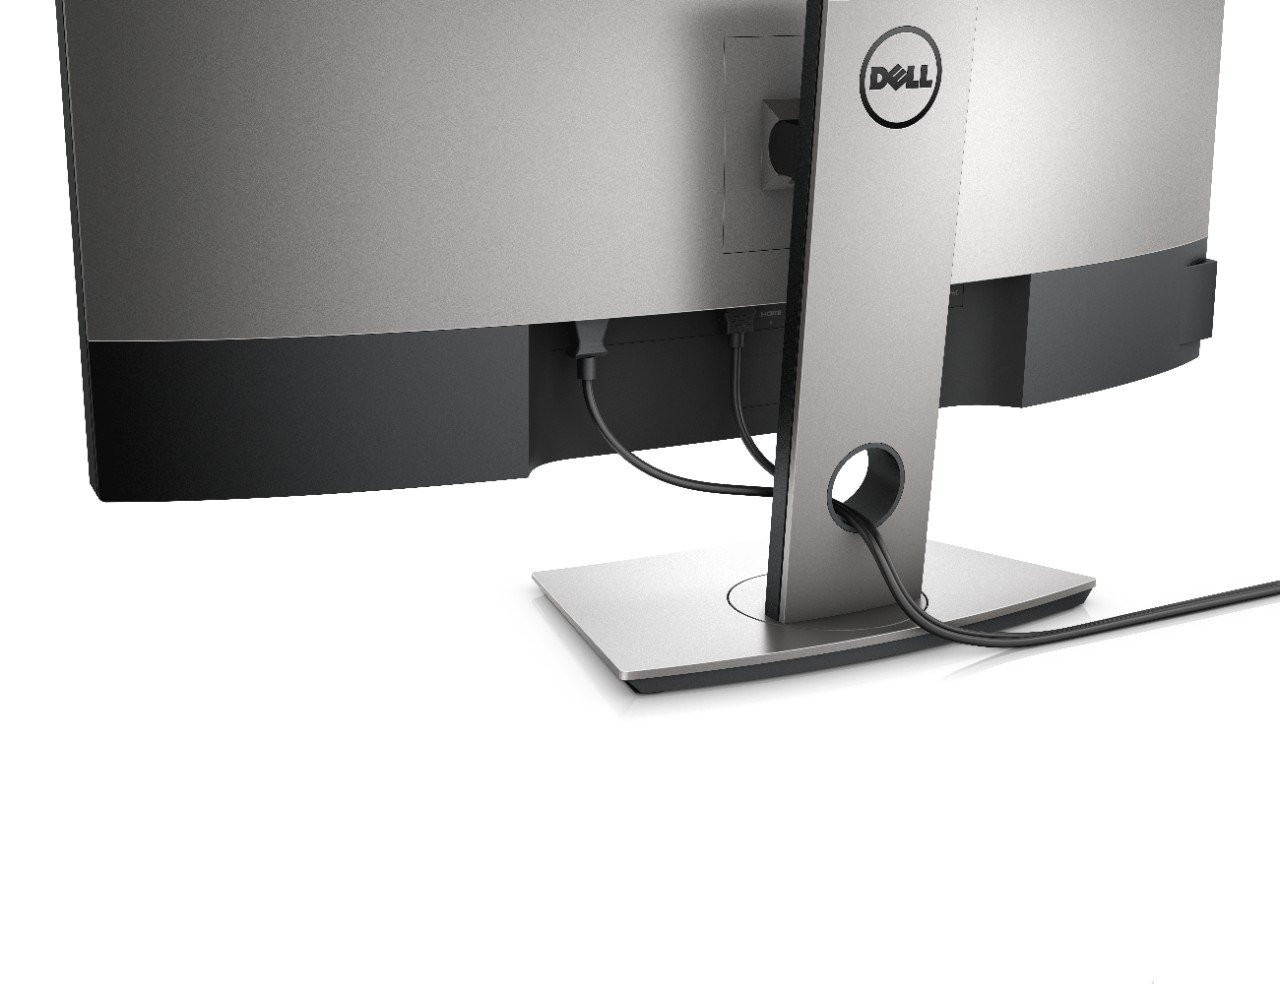 Dell U3417W FR3PK 34-Inch Screen Led-Lit Monitor by Dell (Image #8)